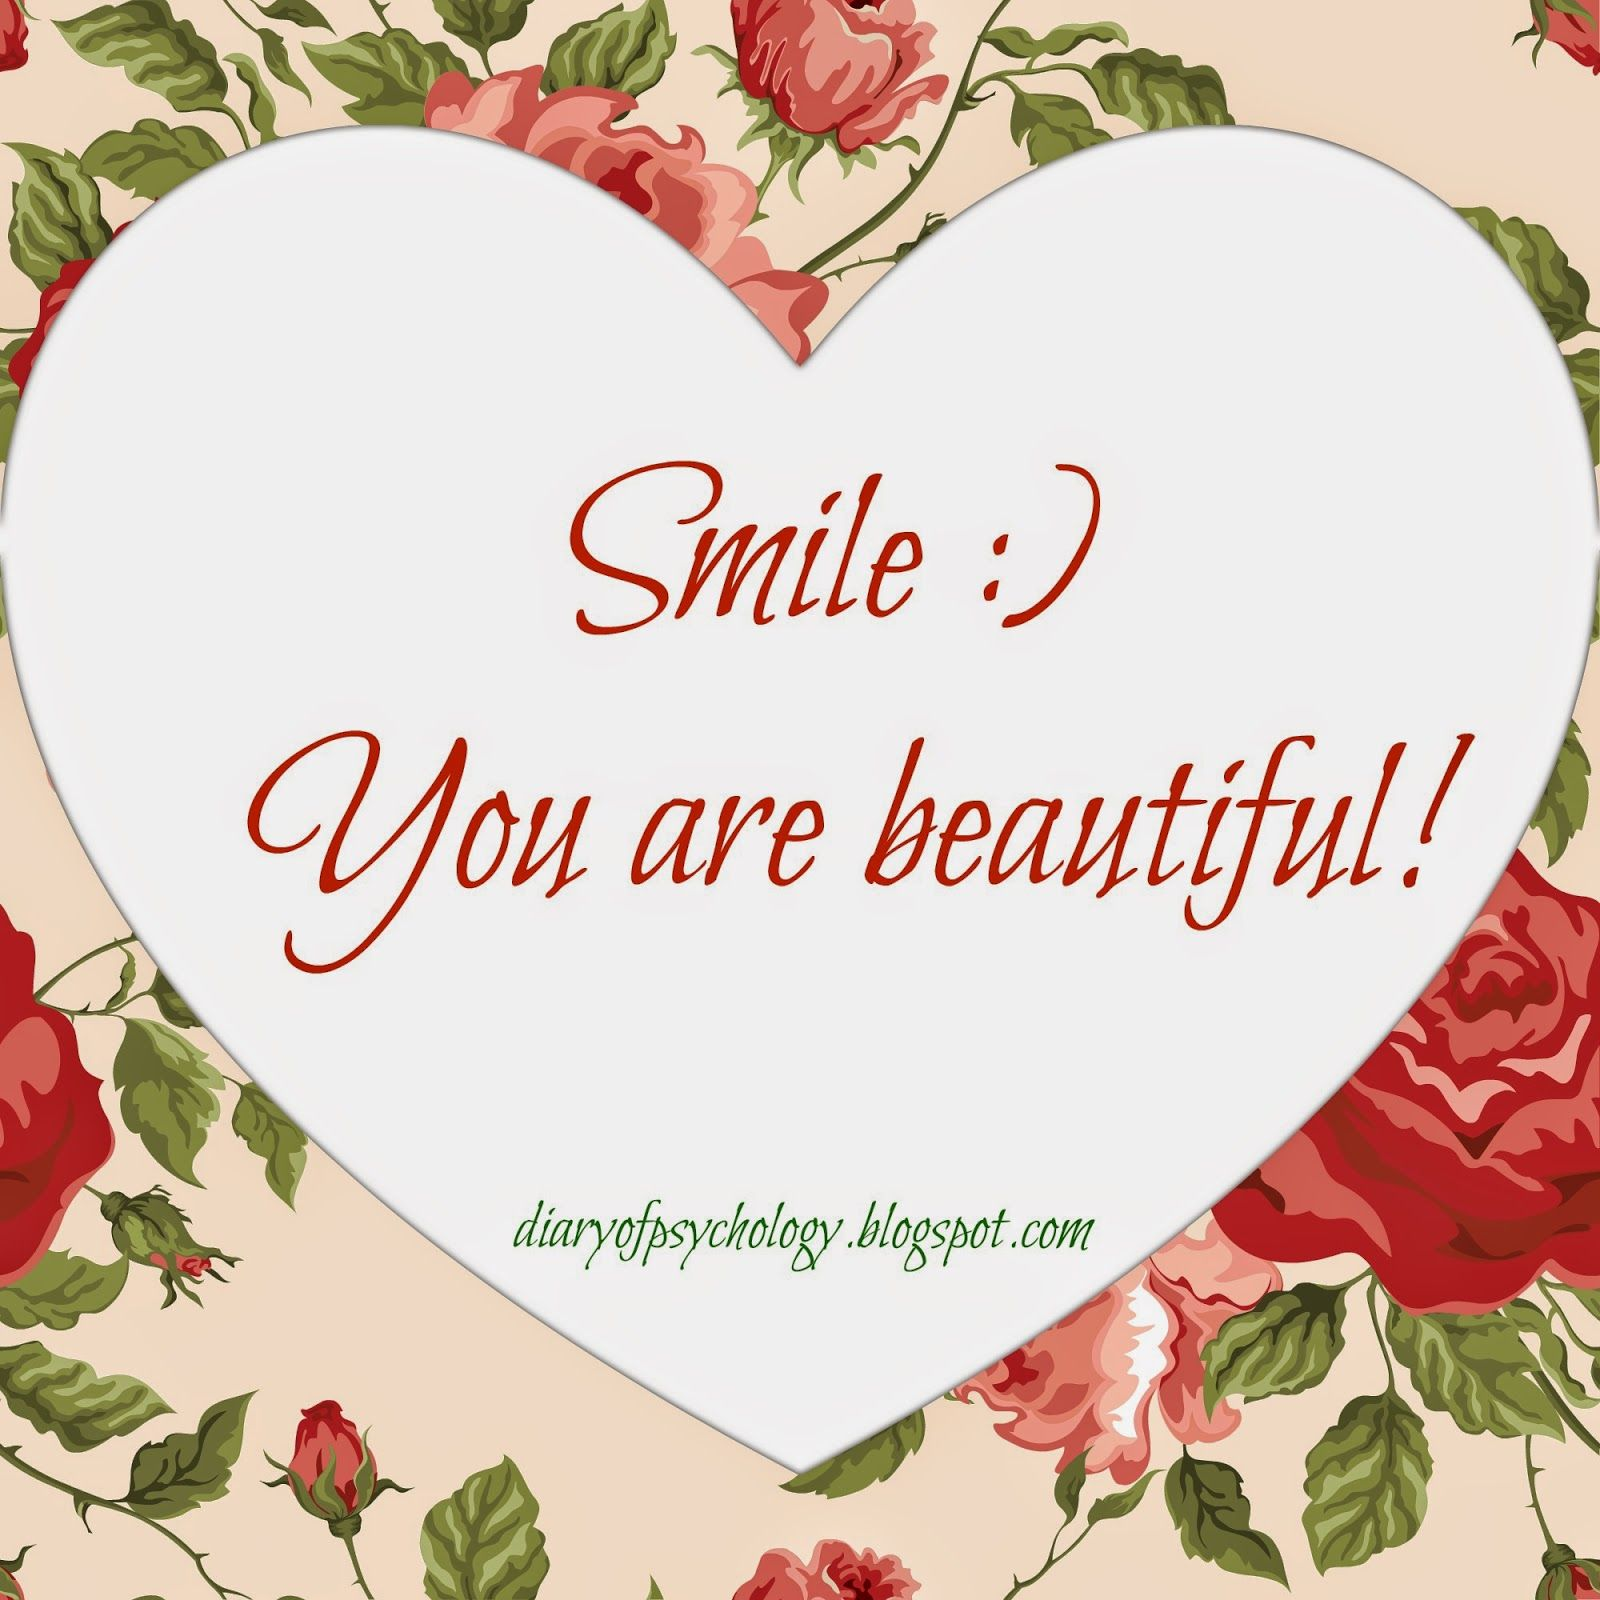 Psychologist Diary Tell the world that you are beautiful Great